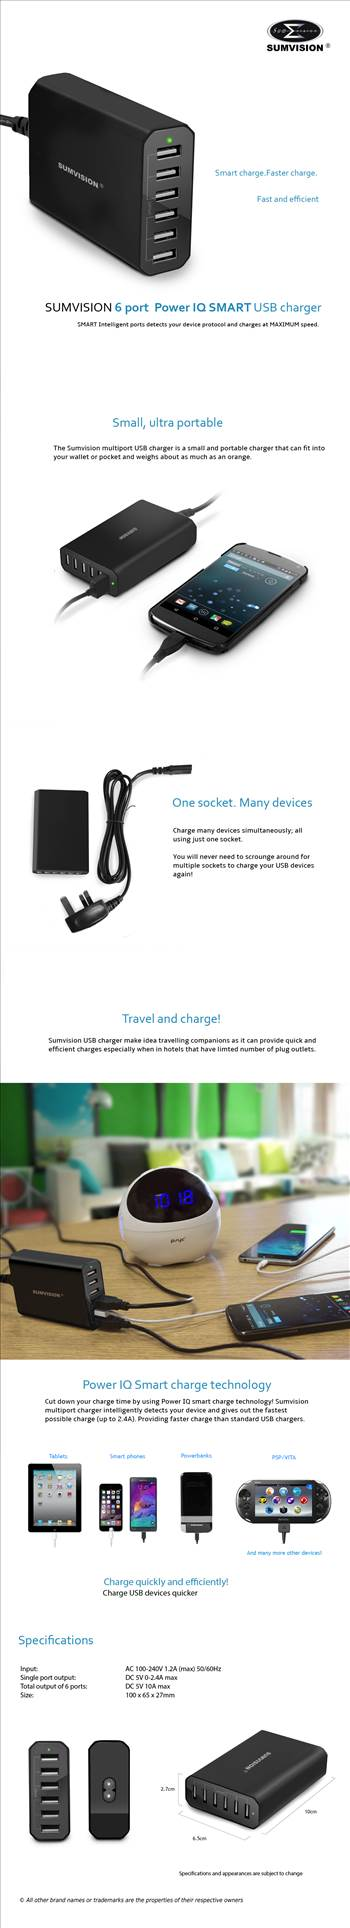 POWER-USB-CHARGER-6P- brochure.jpg by steven